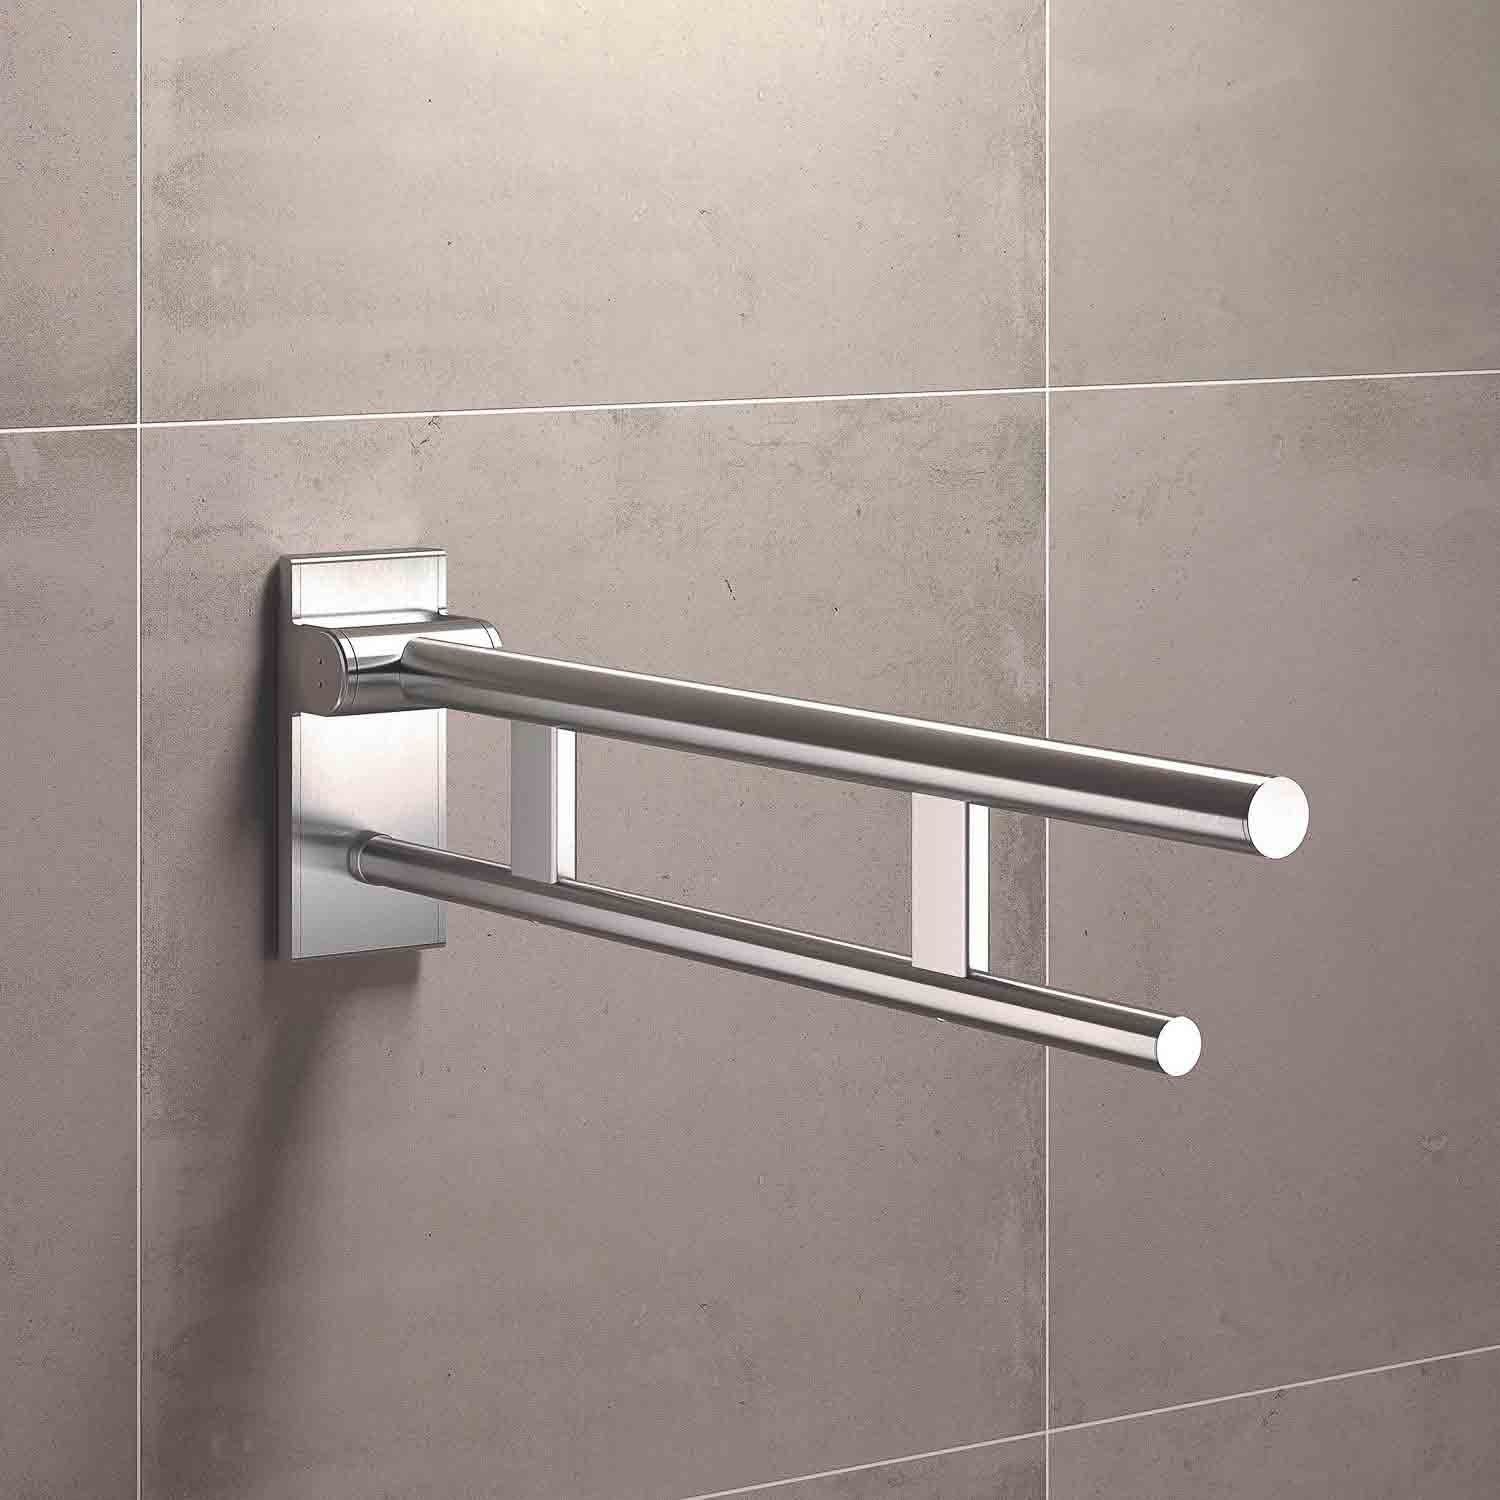 700mm Freestyle Hinged Grab Rail with a satin steel finish lifestyle image